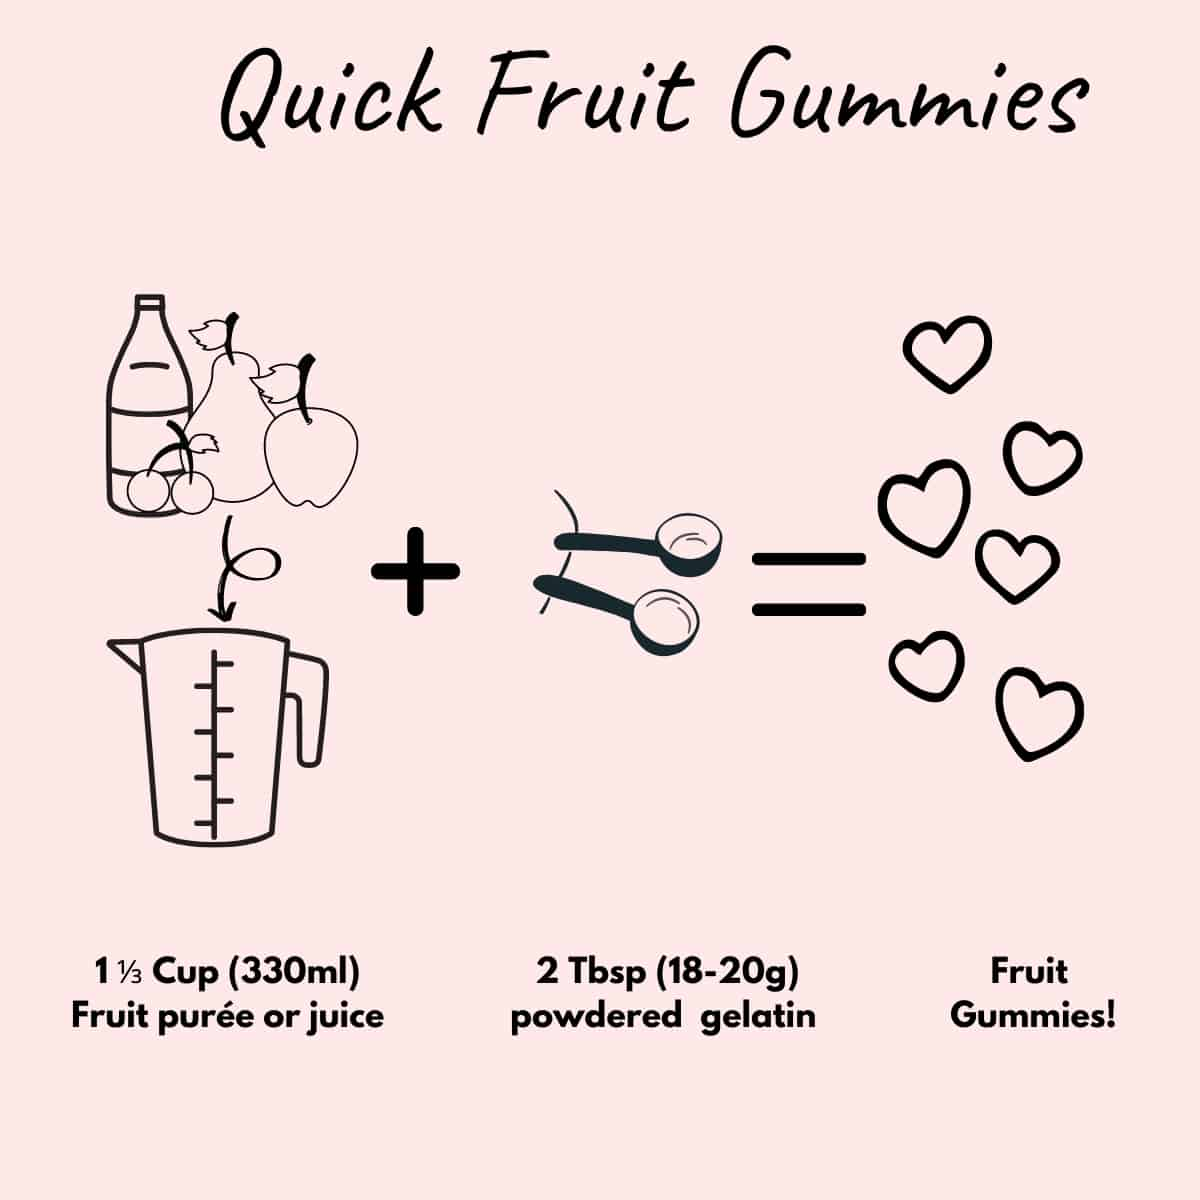 Infographic showing fruit (330ml) + gelatin (2Tbsp) = fruit gummies